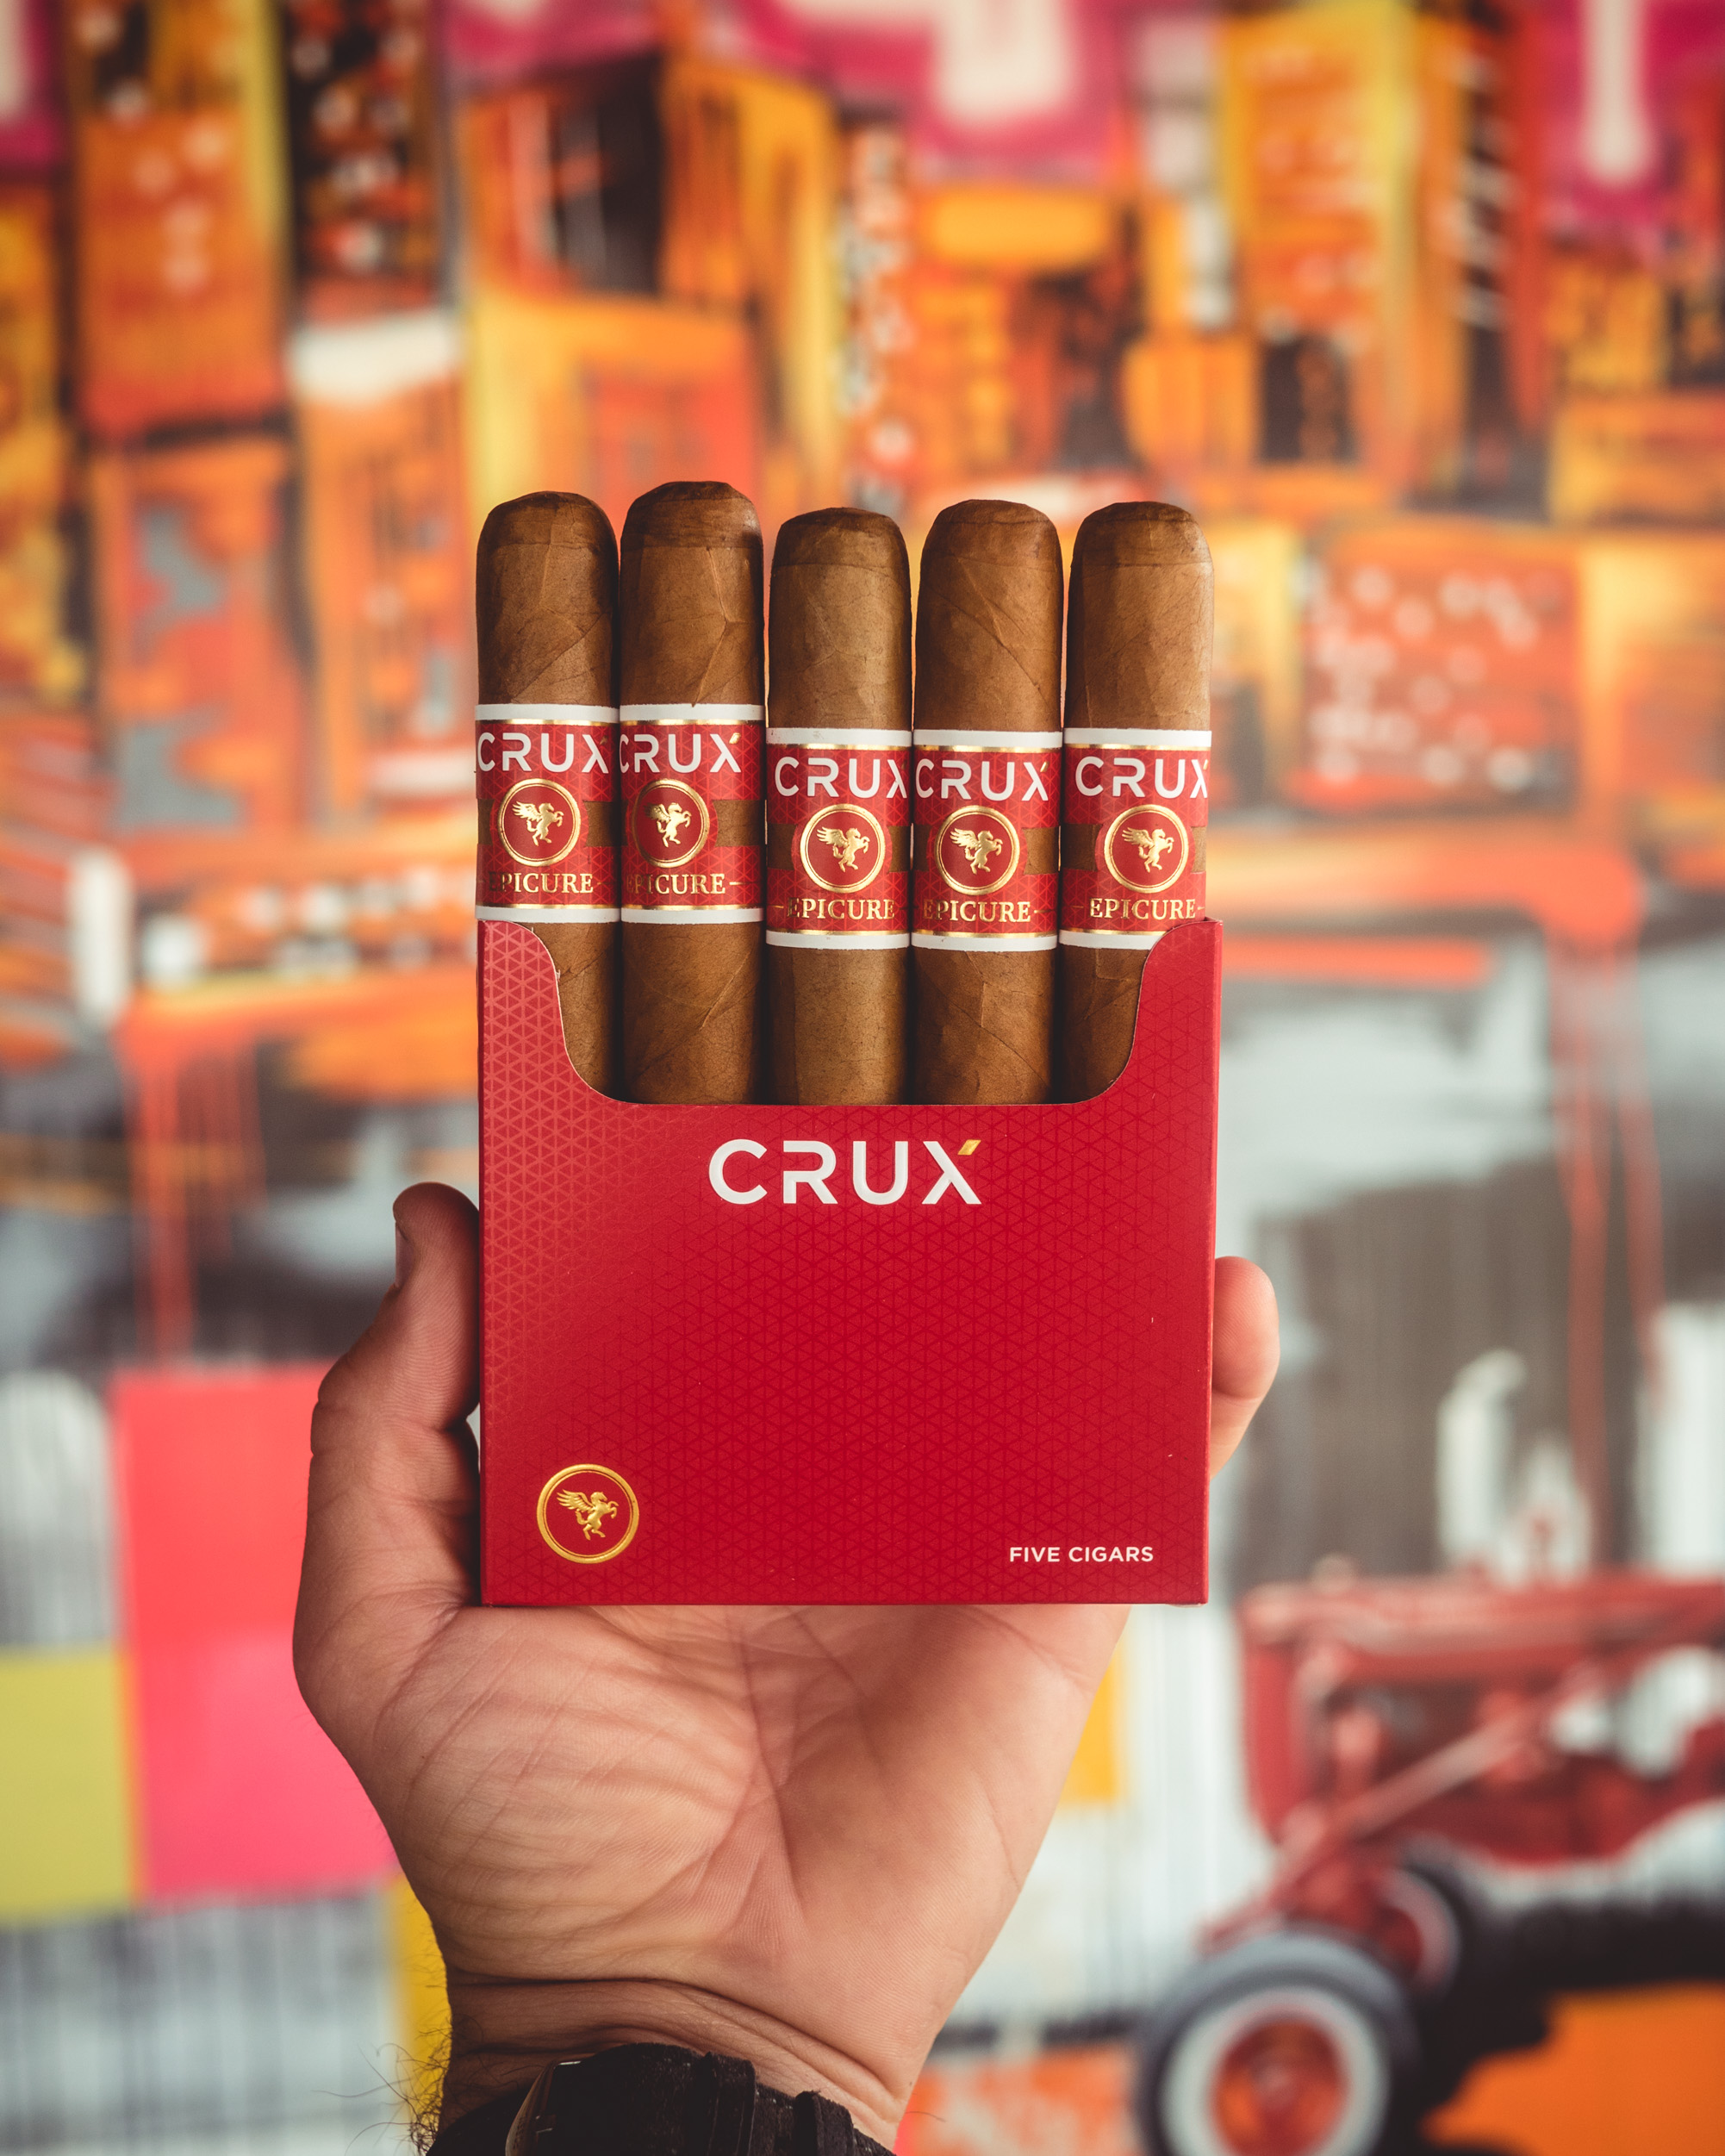 Crux Cigars 5-pack rebranded layout